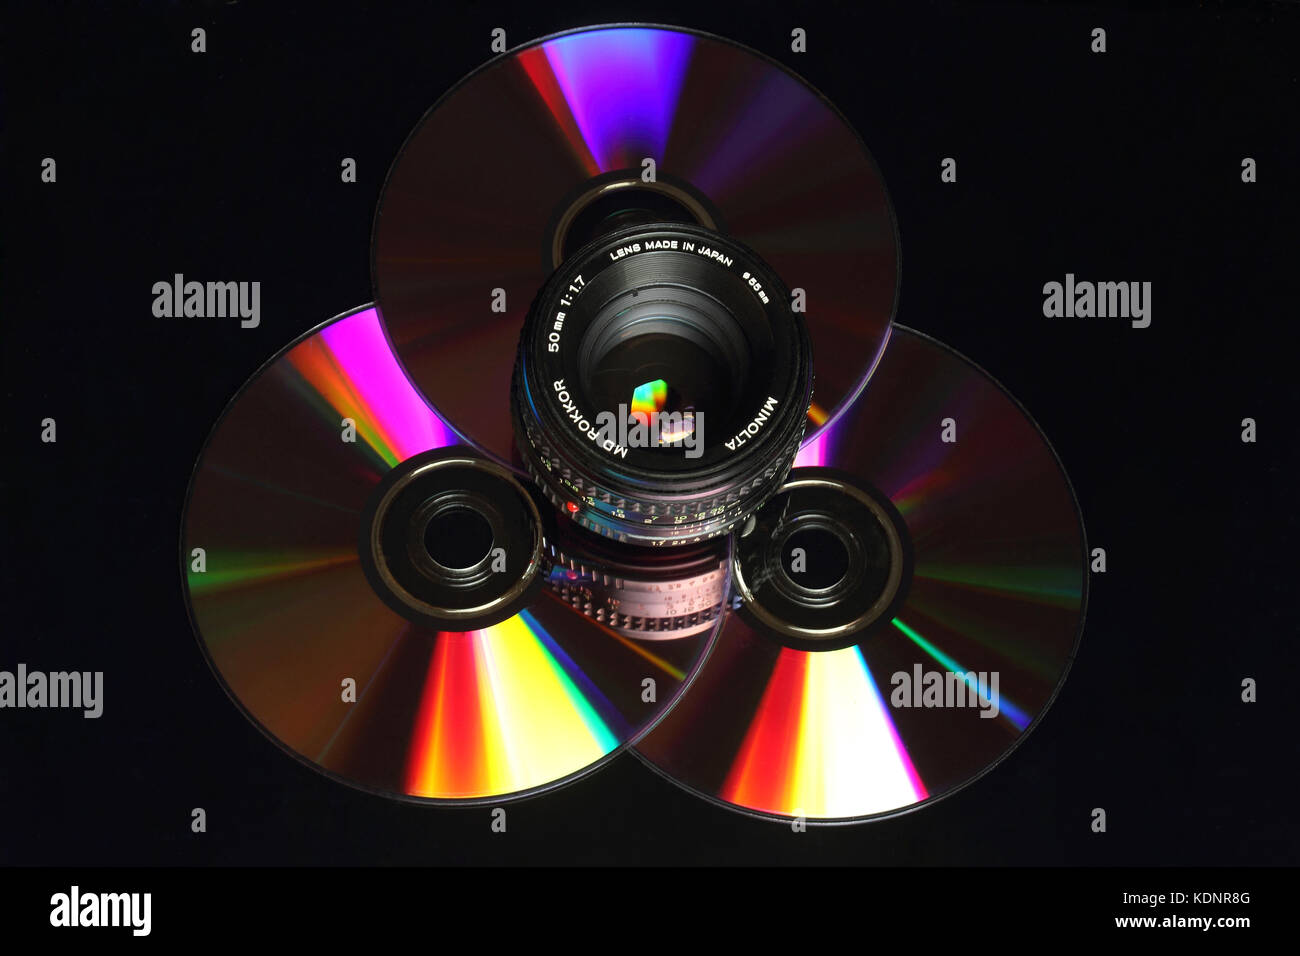 Old Minolta 50 mm lens reflected on DVD. - Stock Image